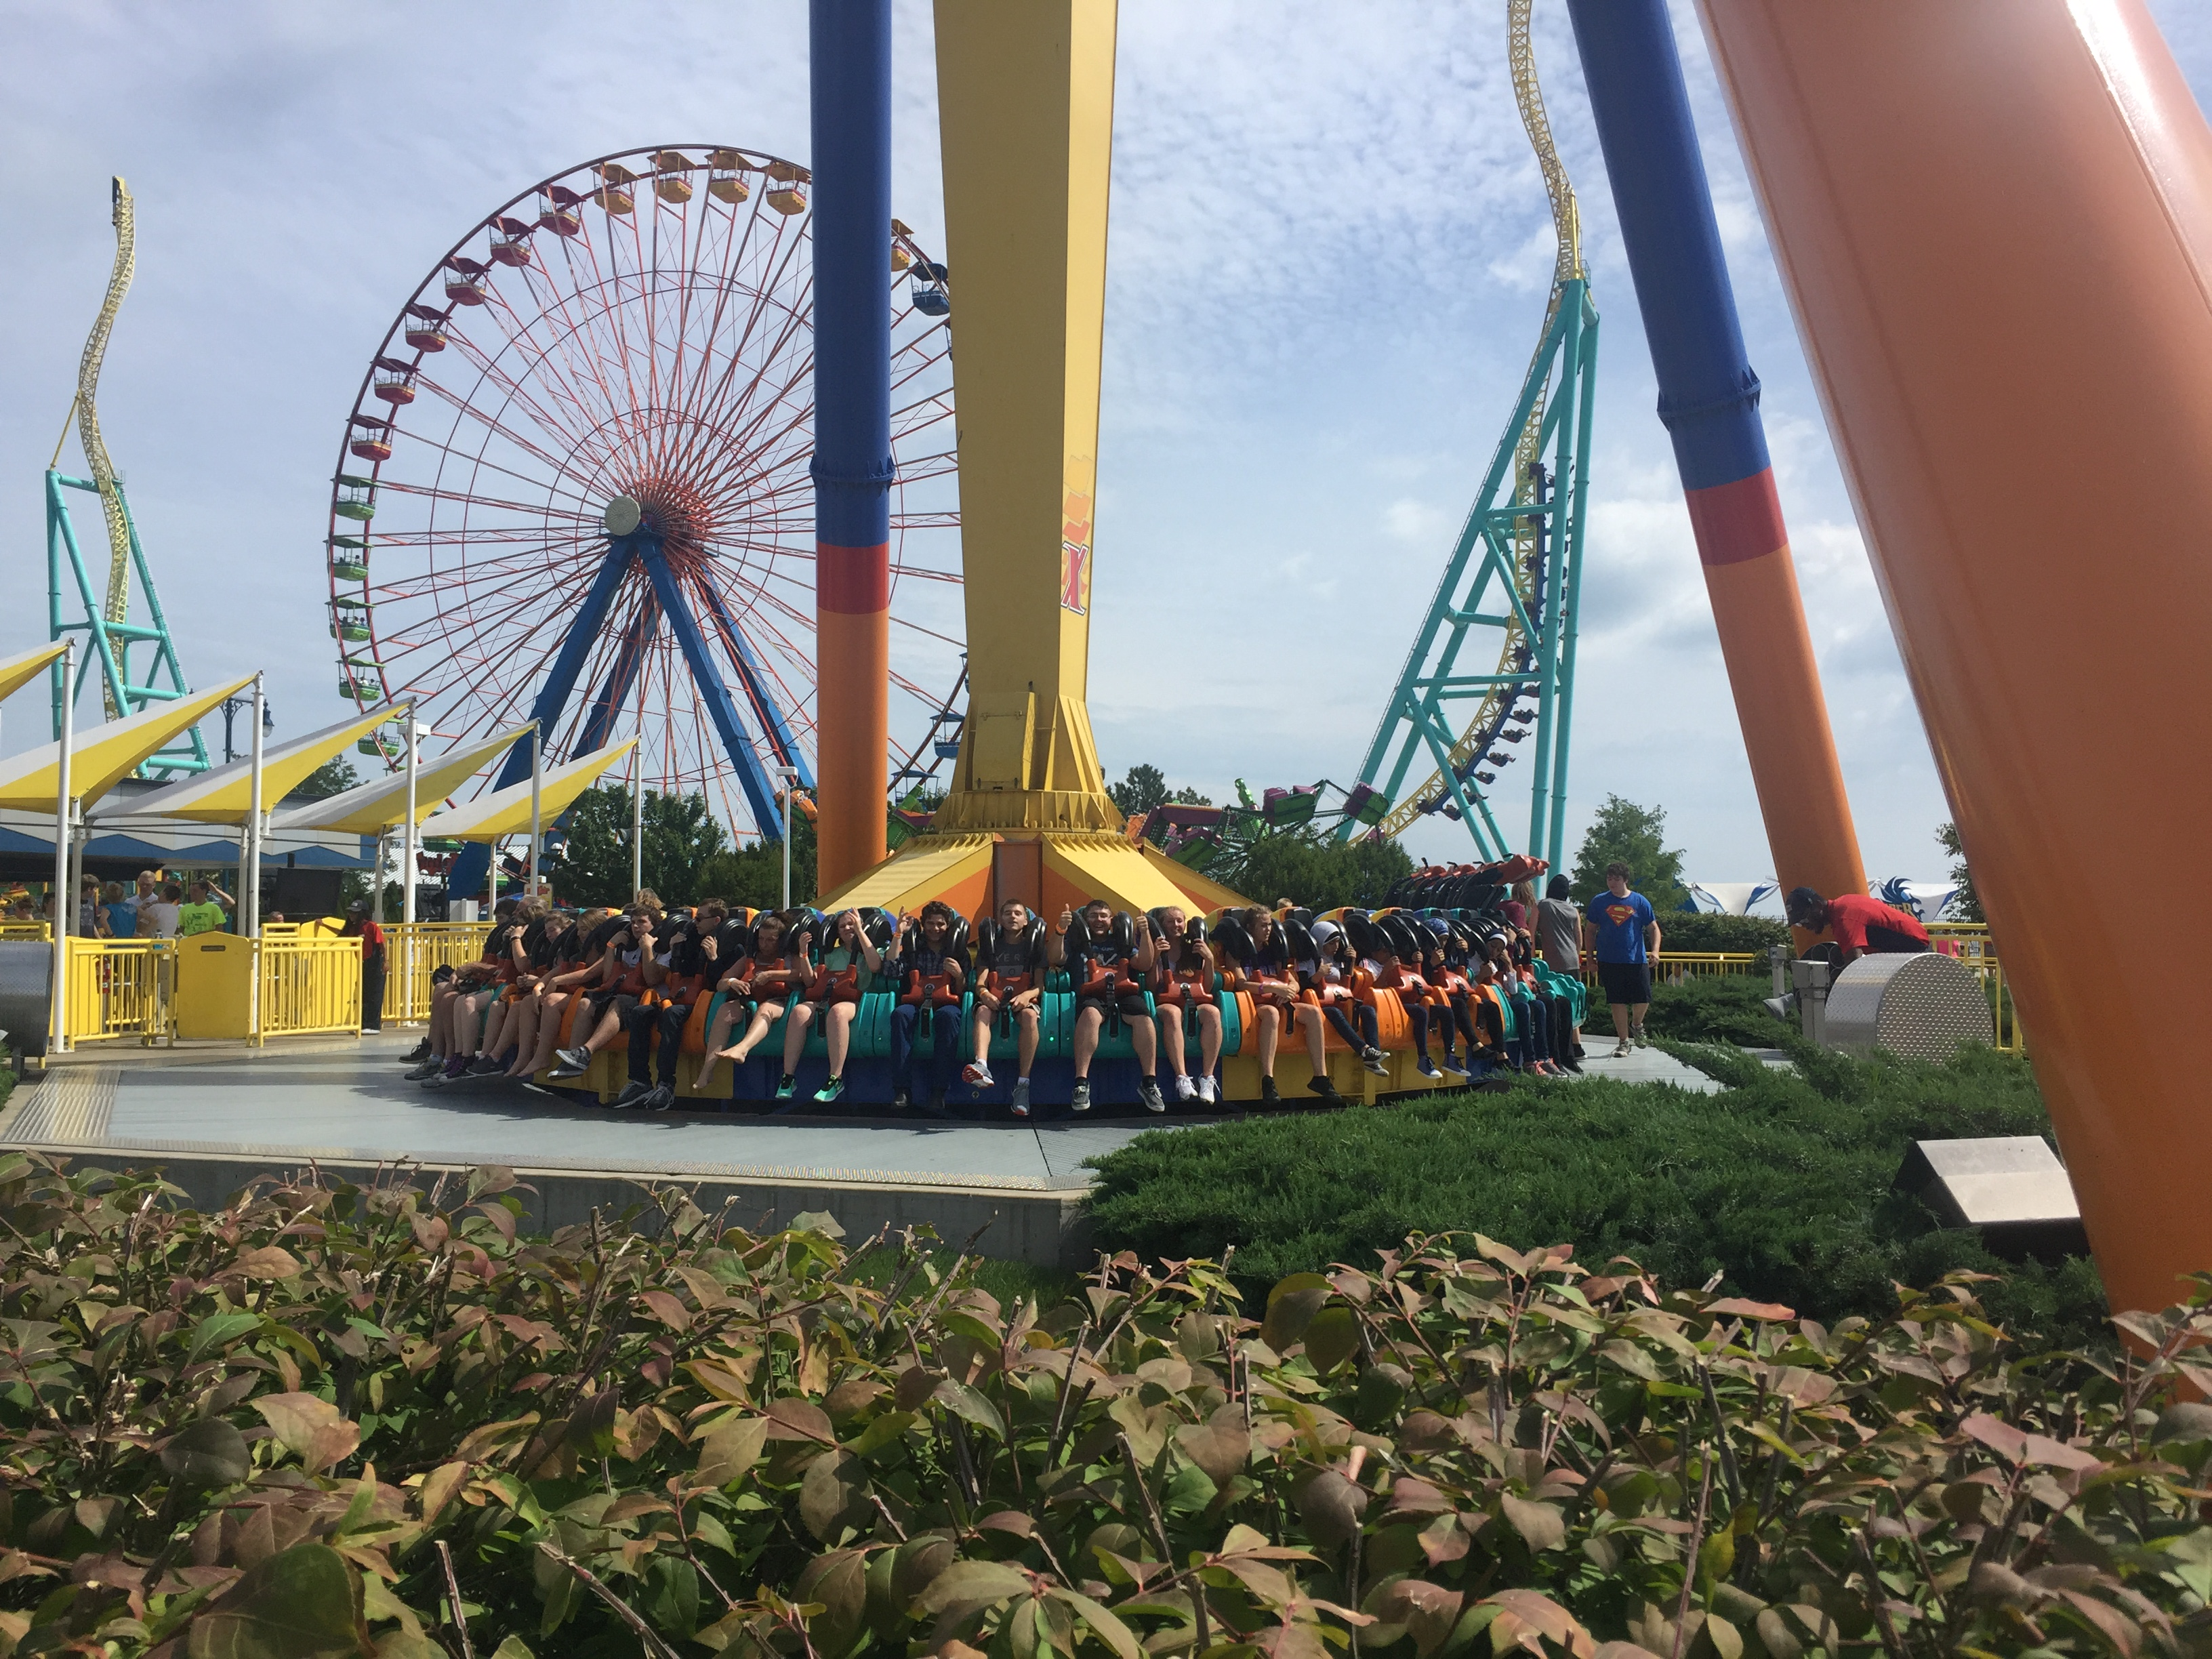 Cedar Point – 5 Things You Need to Know if You Are Visiting the #1 Roller Coaster Capital of the World